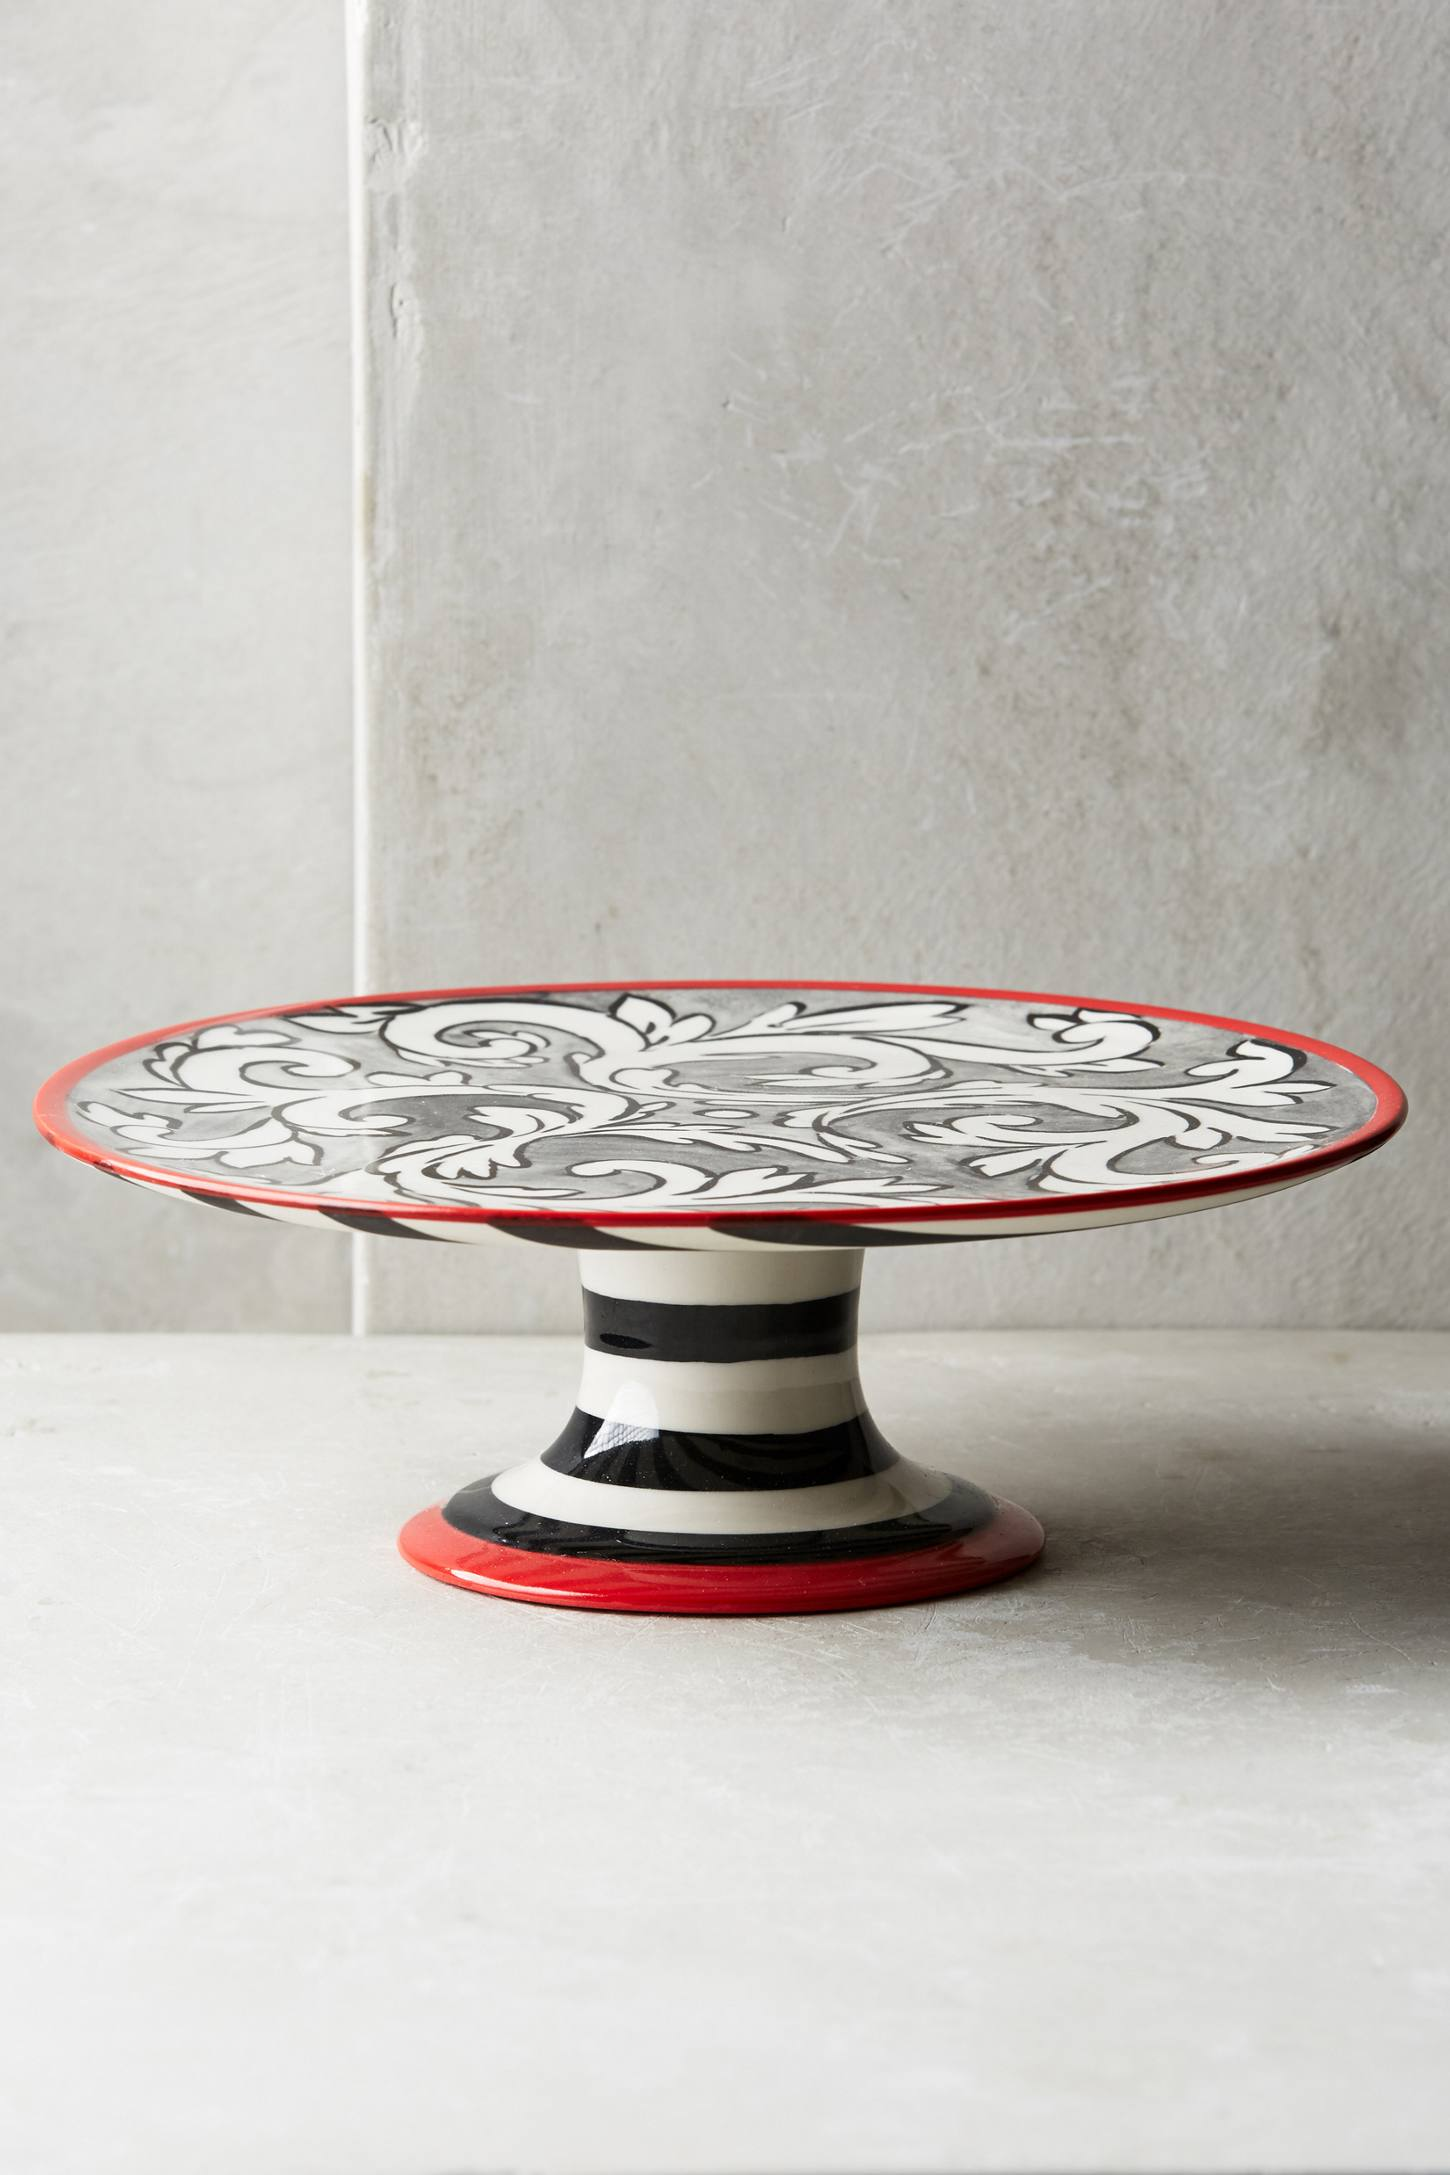 Felicitation Small Cakestand